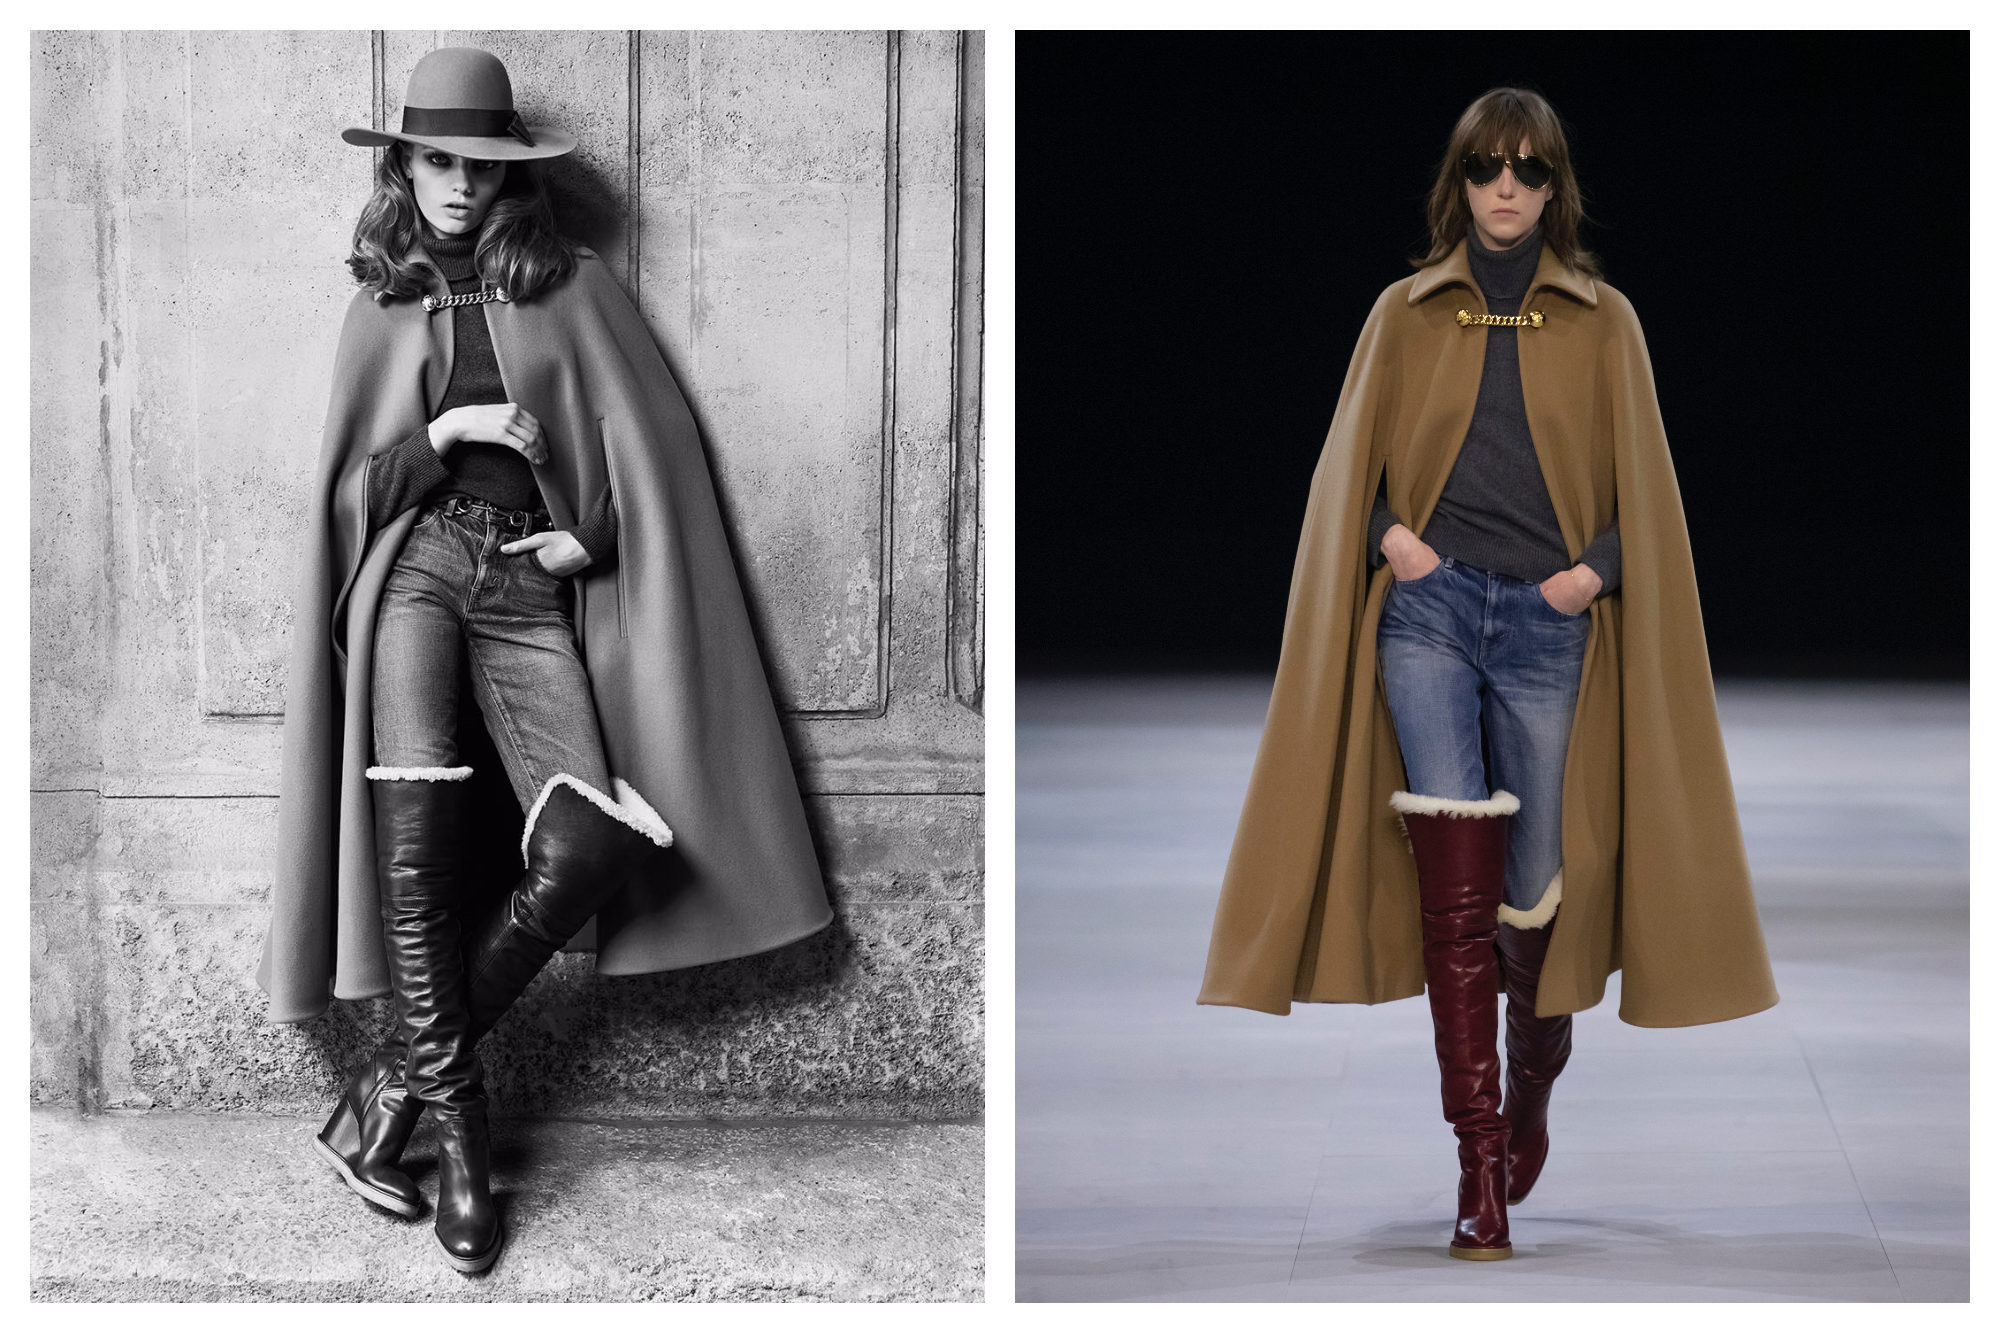 Capes are in this winter according to the fashion week trends.